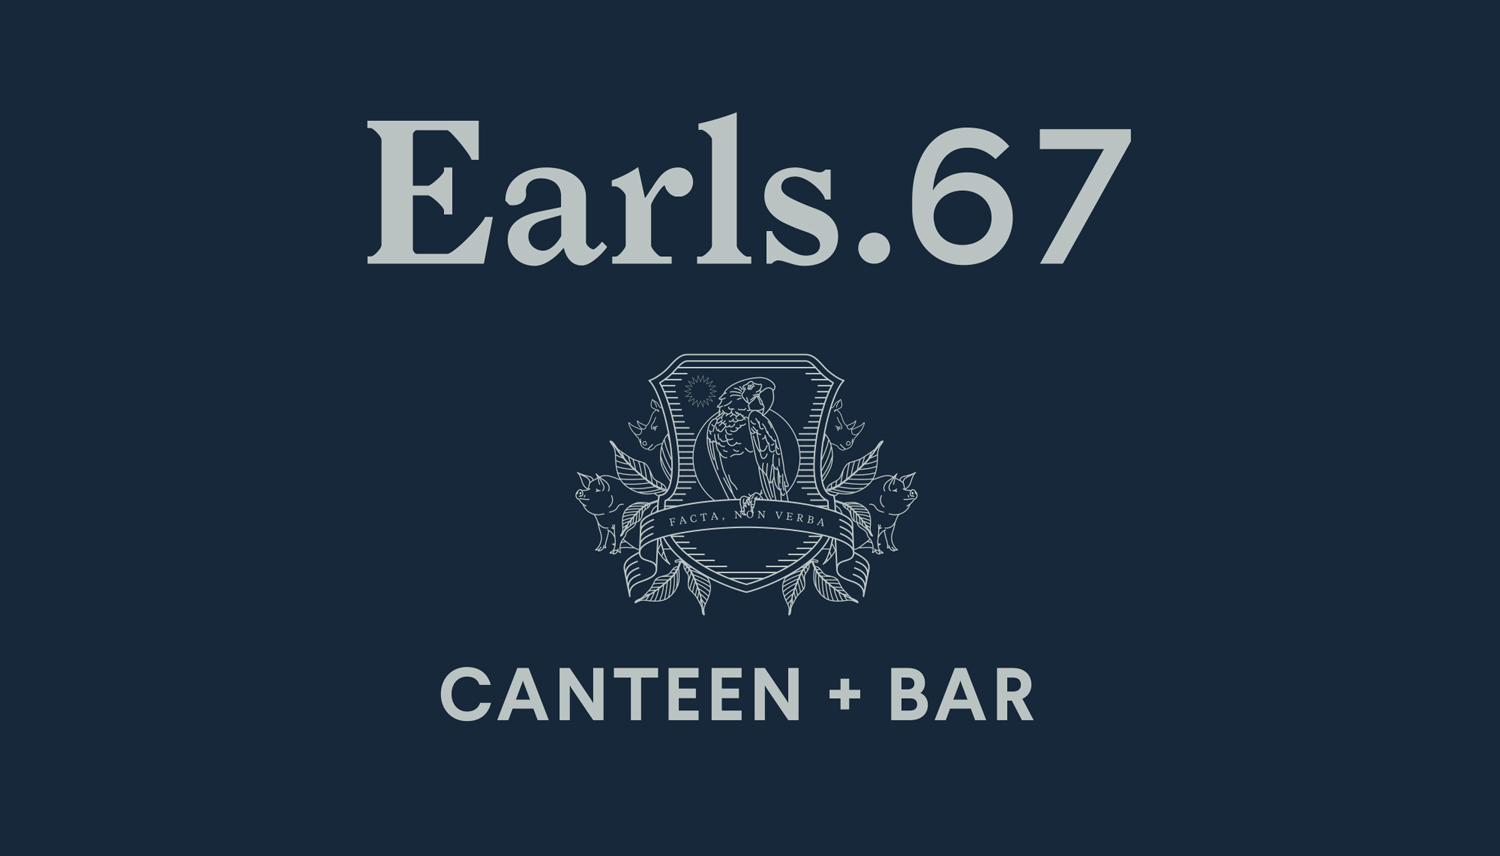 Logo and logotype by Glasfurd & Walker for US and Canadian restaurant chain prototype Earls.67